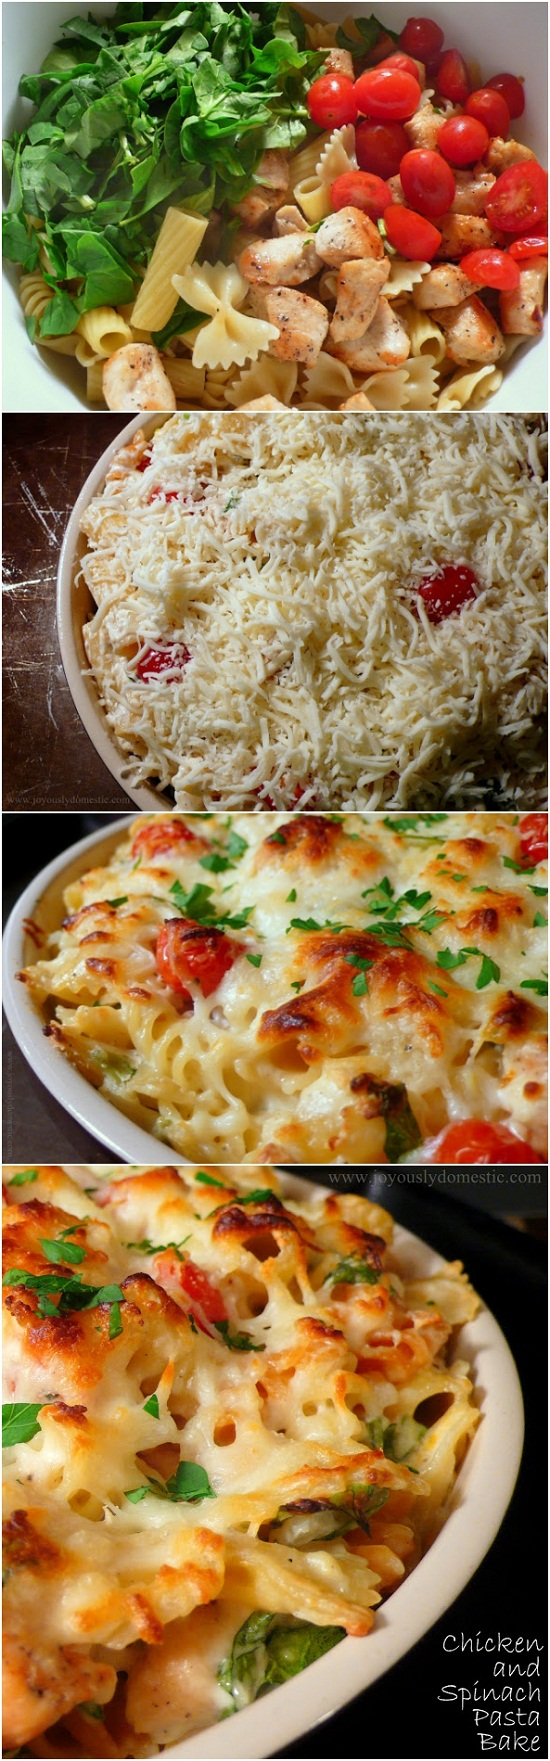 Chicken-and-Spinach-Pasta-Bake-Recipe